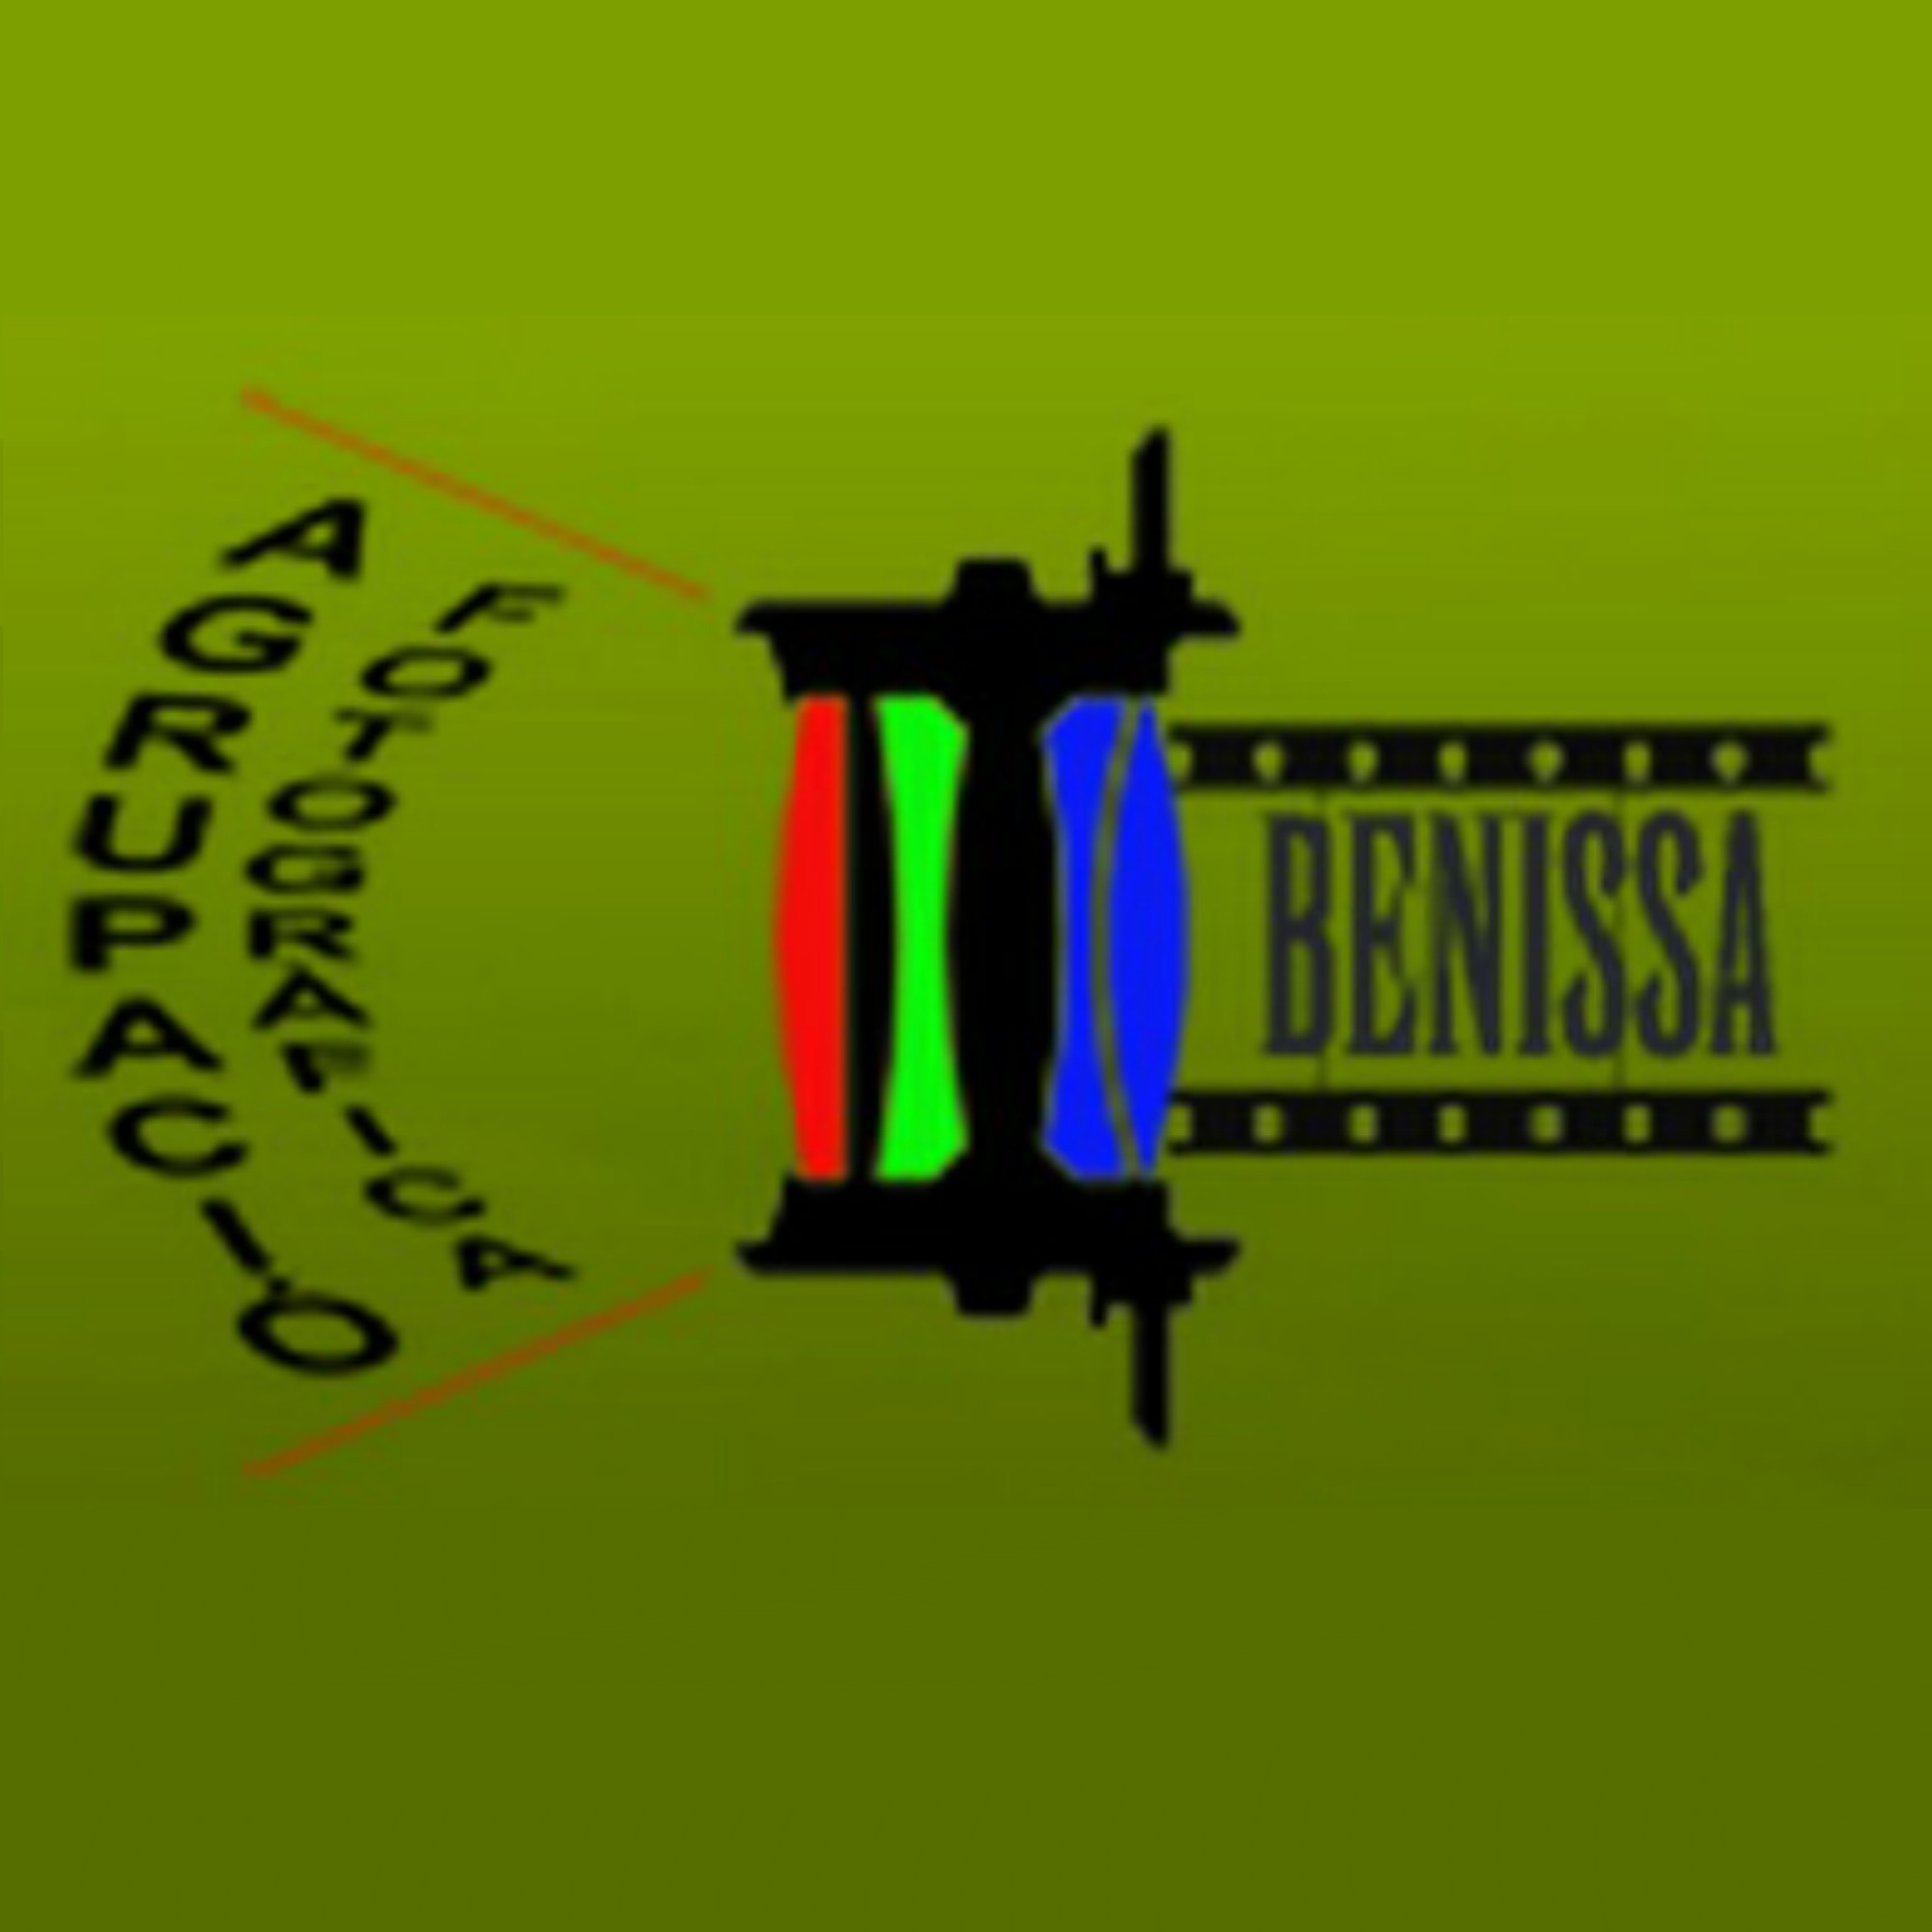 Photograph association Benissa